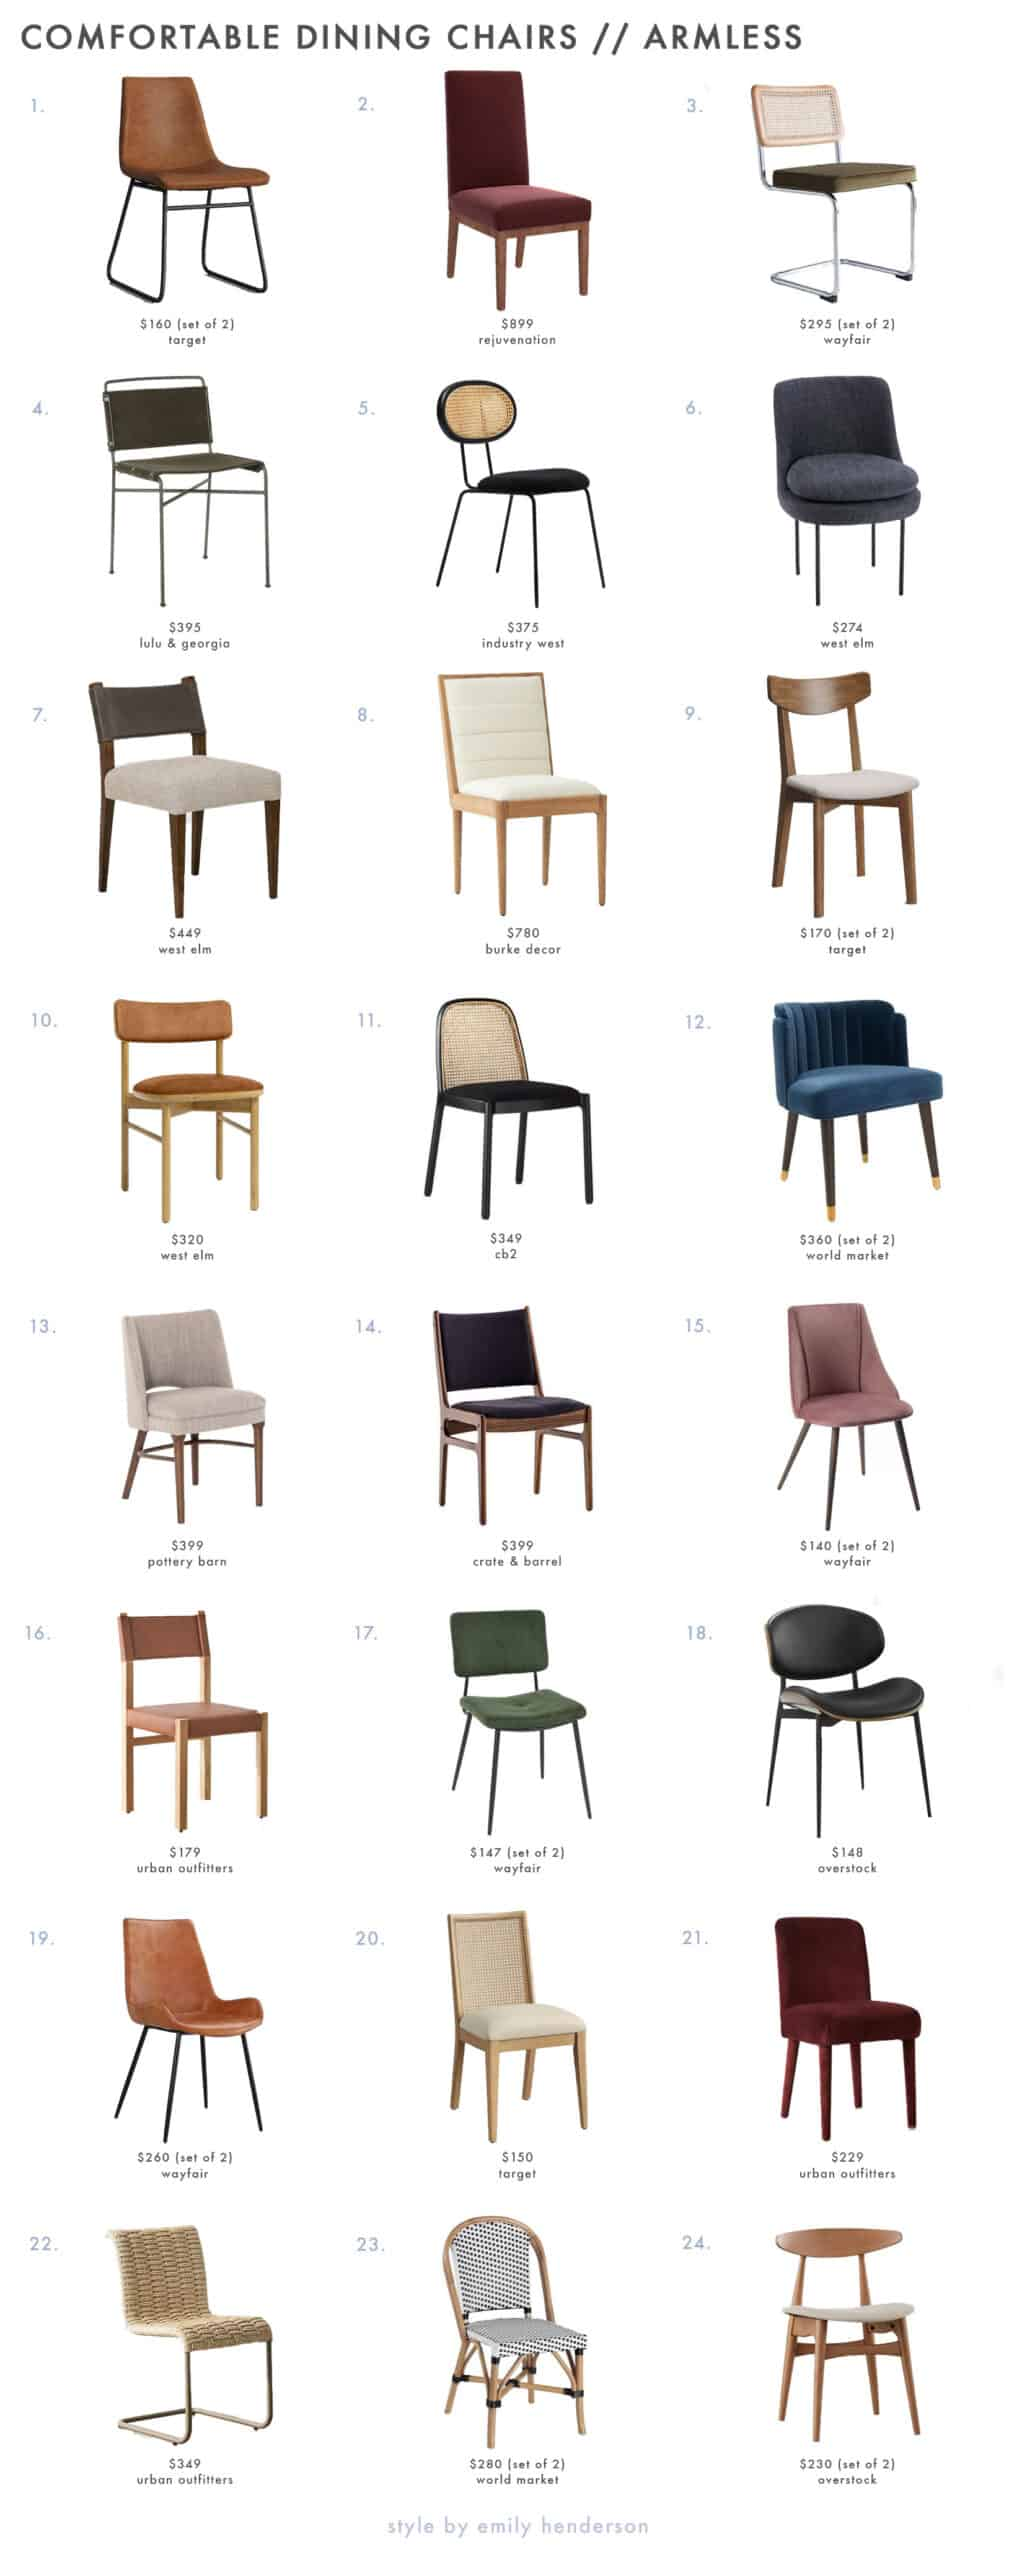 93 Dining Chairs That Meet All Your Comfort Needs Rules For Picking Them Out Emily Henderson